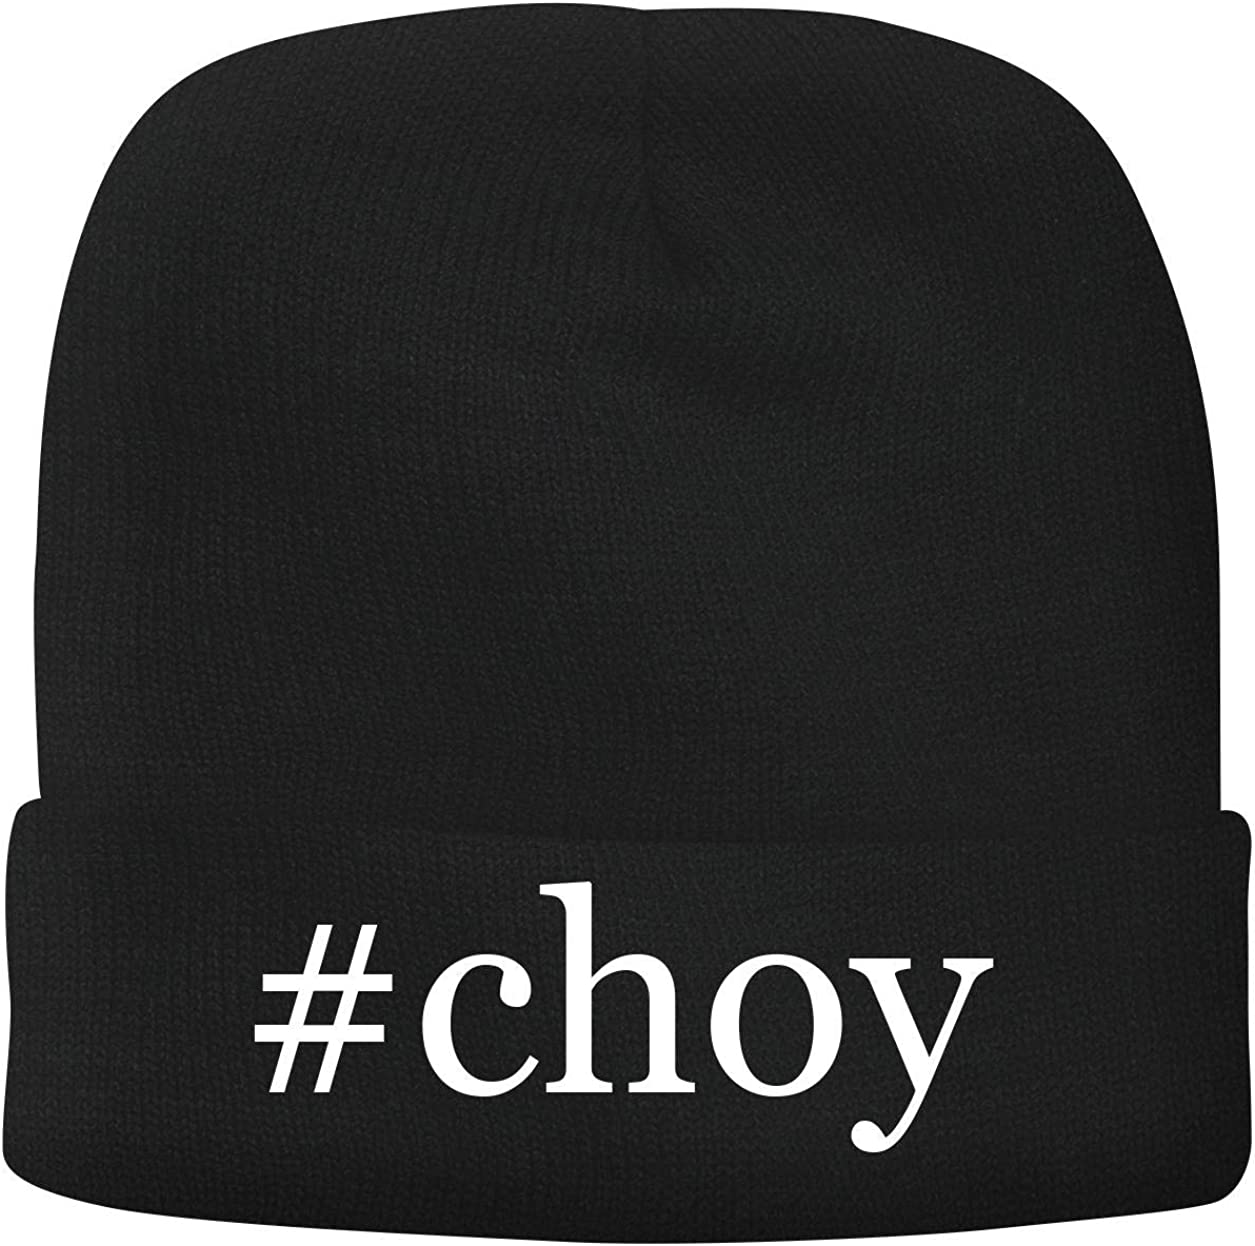 BH Cool Designs #Choy - Comfortable Ranking Superior integrated 1st place Soft Hashtag Beanie Men's